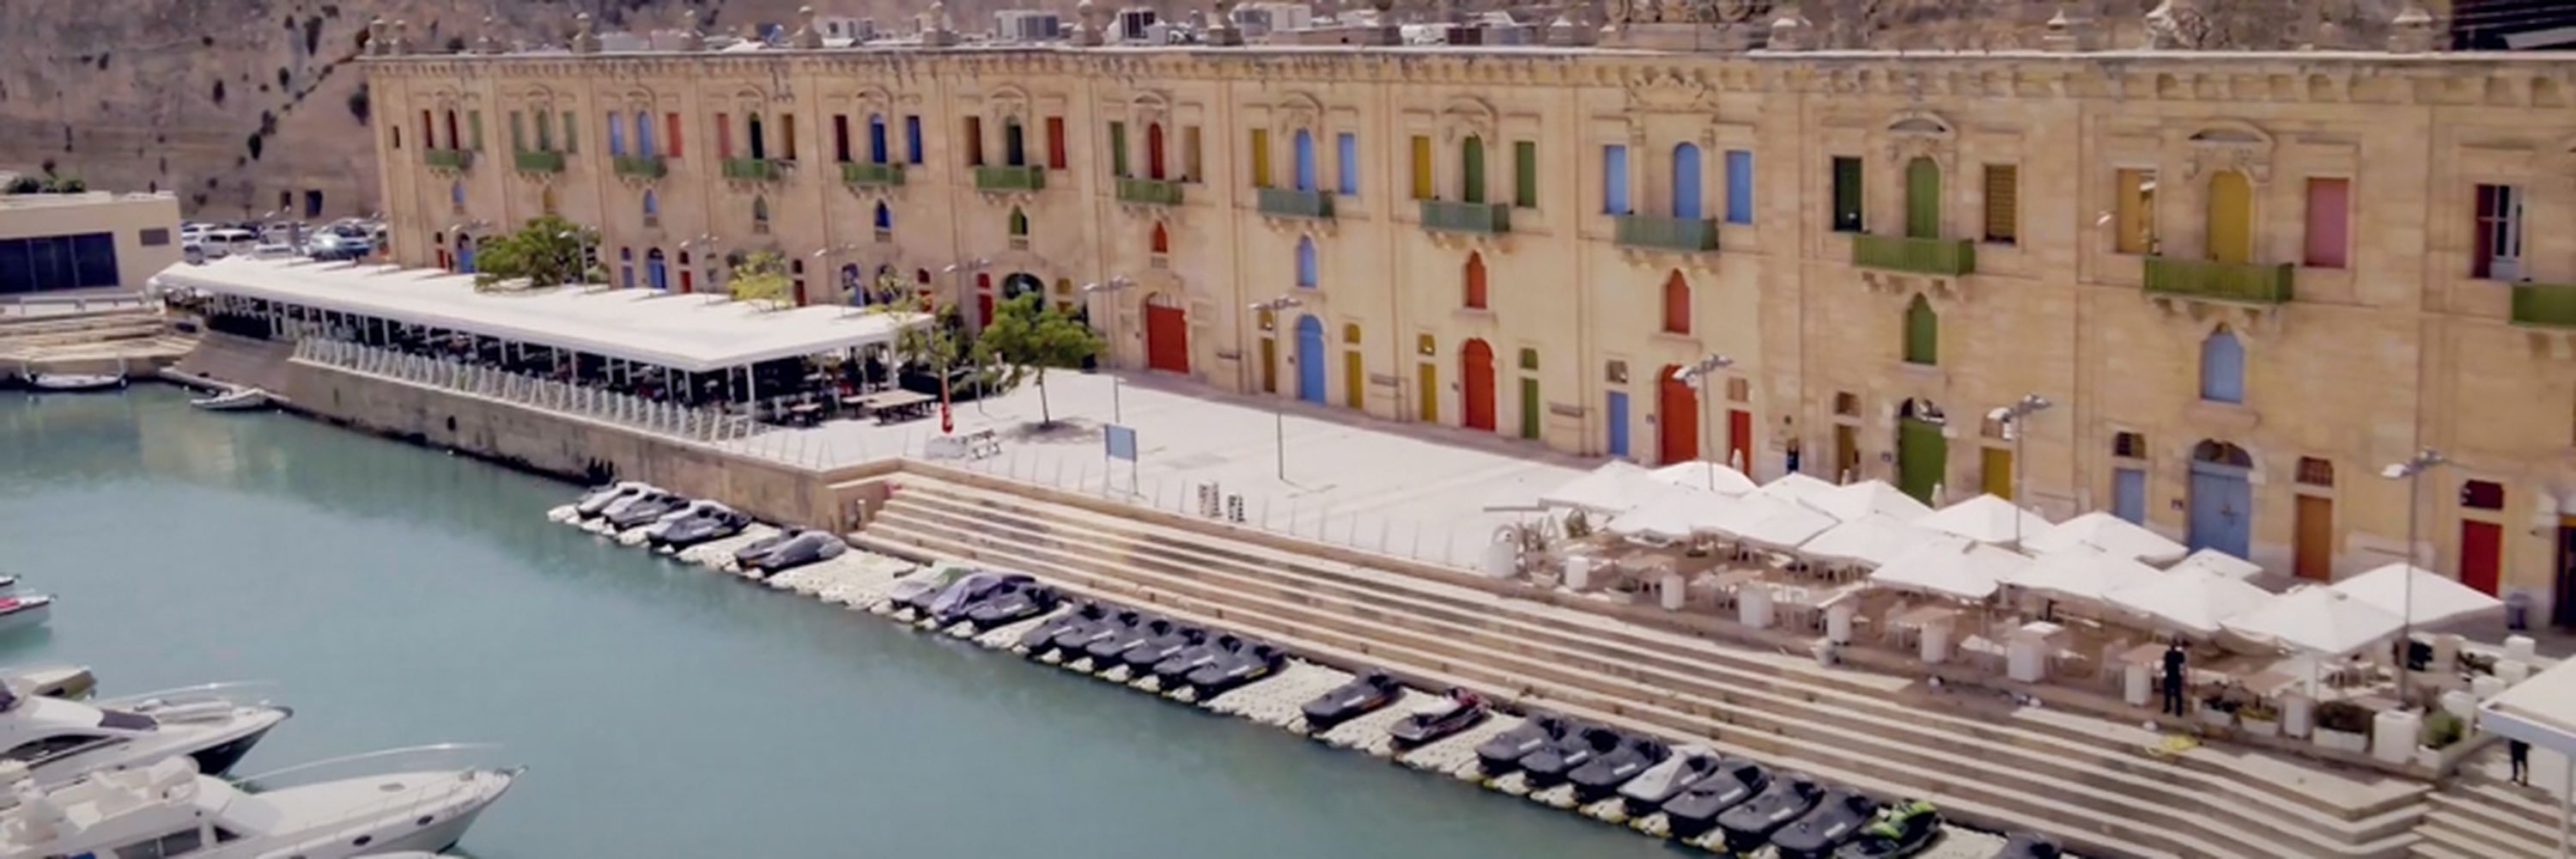 An aerial view of the Valletta Waterfront from the motion blur commercial